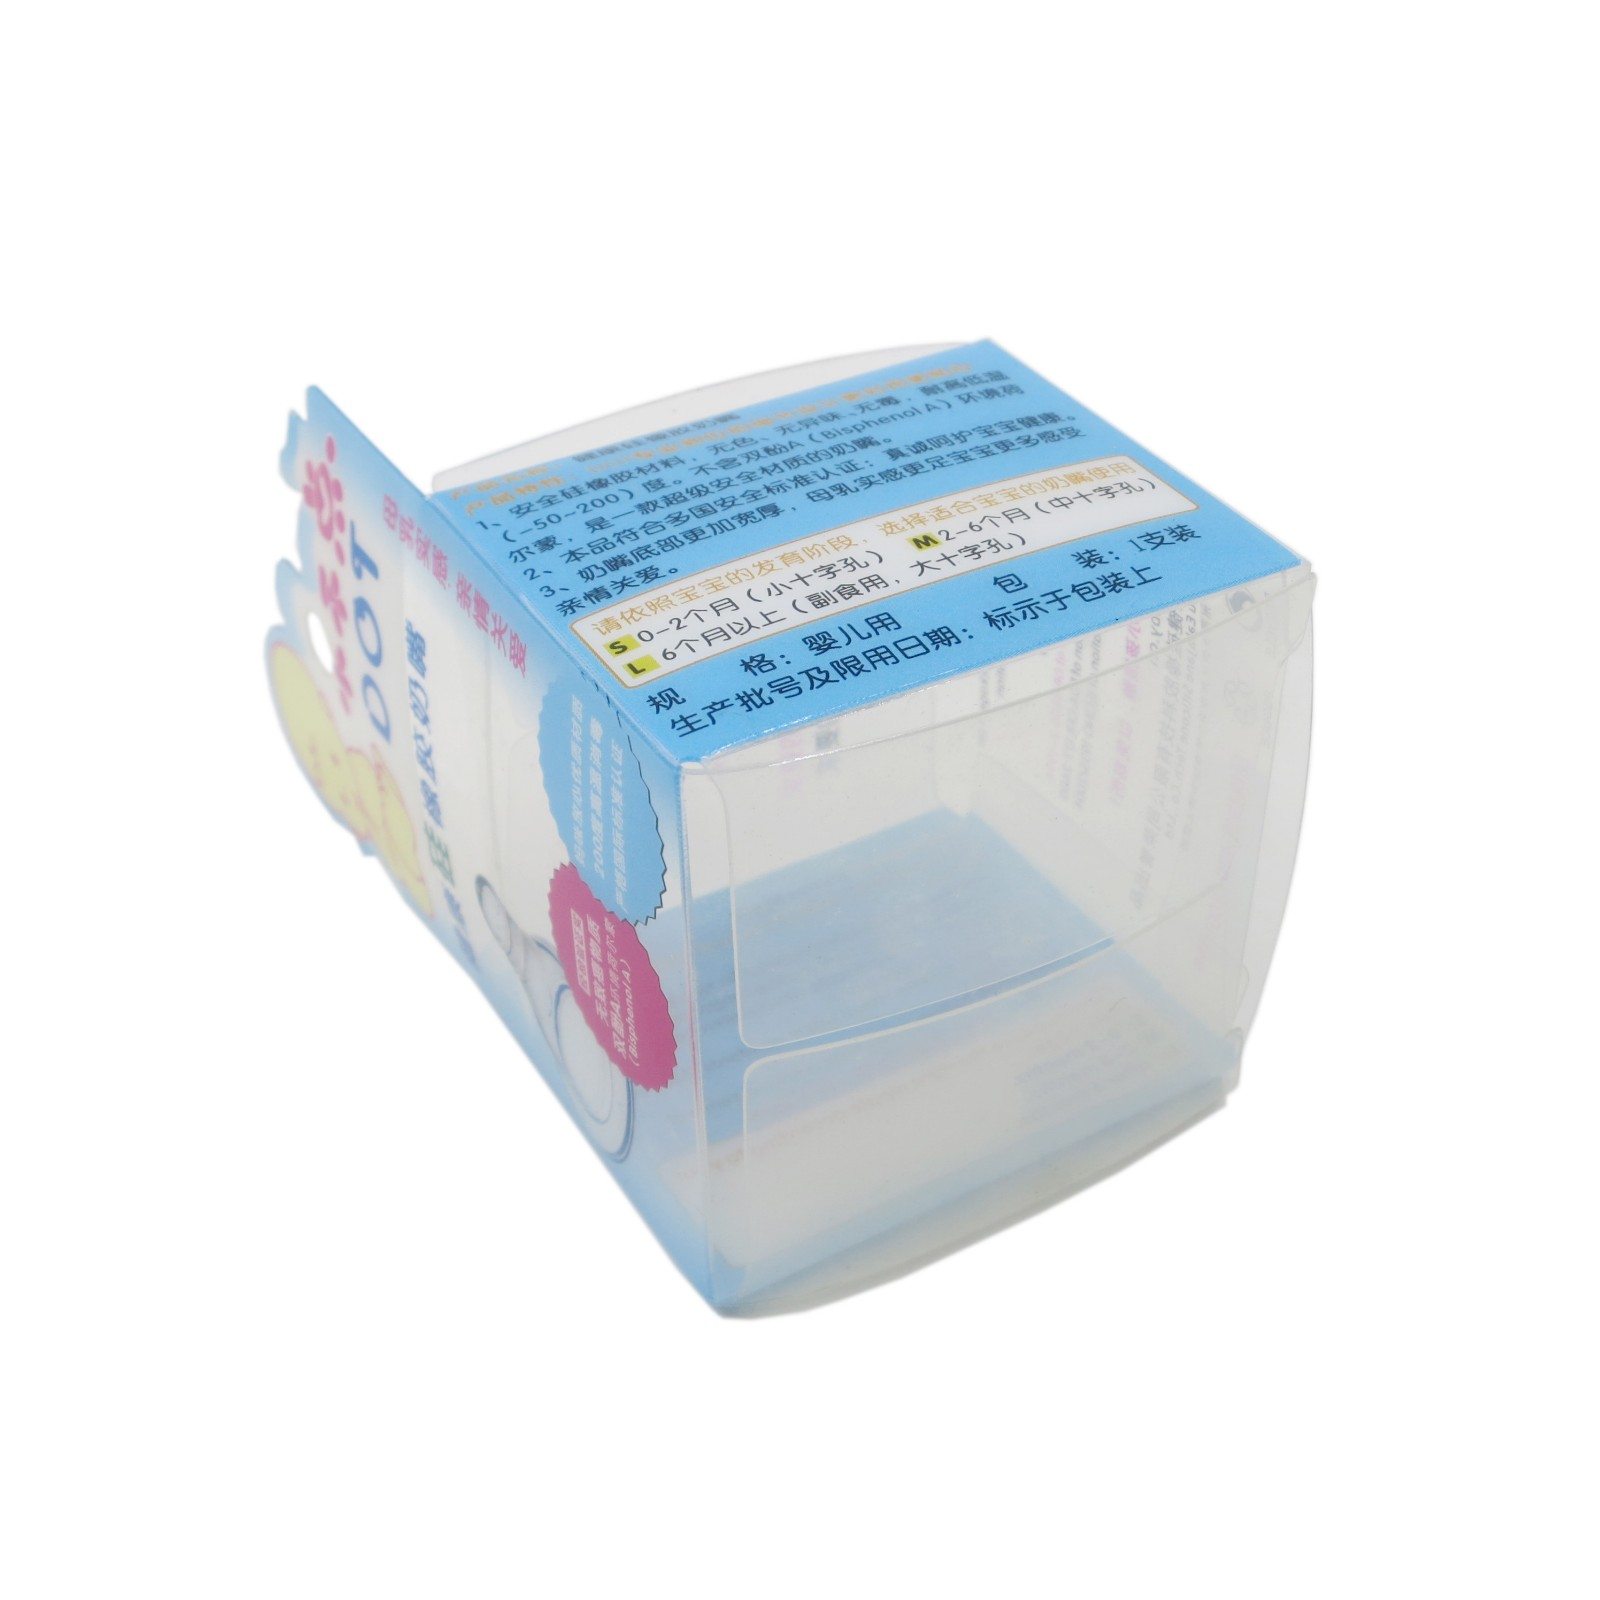 Yijianxing Plastic Products inexpensive pvc transparent box free quote for gifts-7